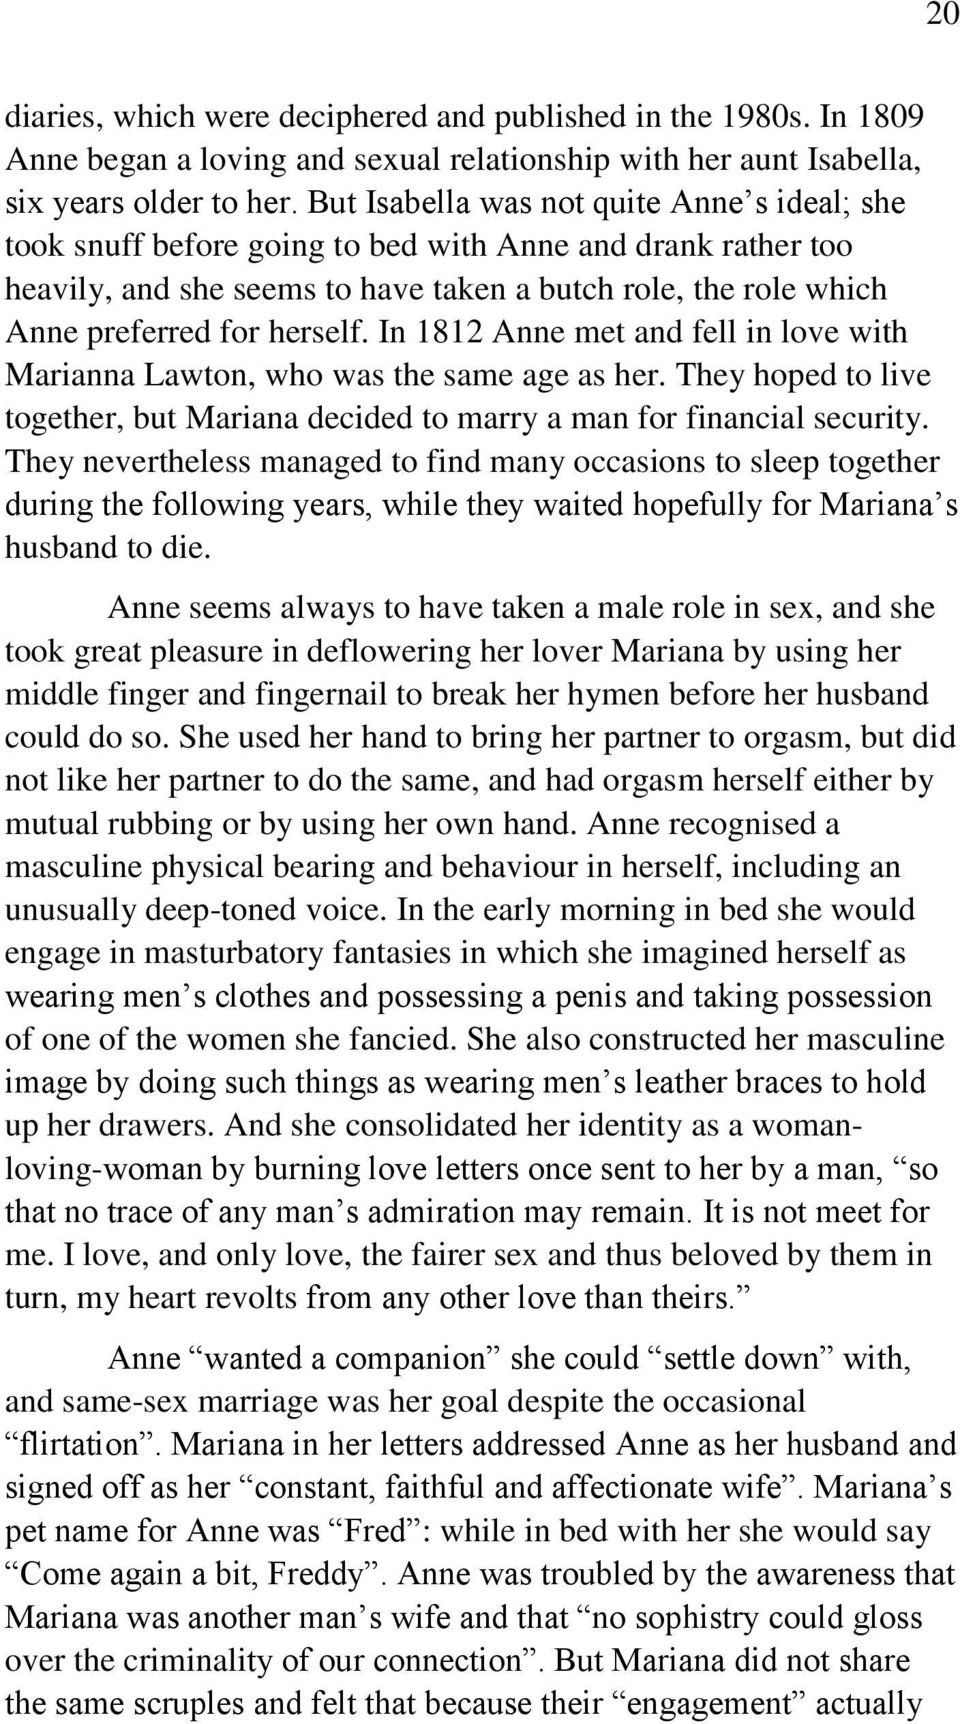 In 1812 Anne met and fell in love with Marianna Lawton, who was the same age as her. They hoped to live together, but Mariana decided to marry a man for financial security.